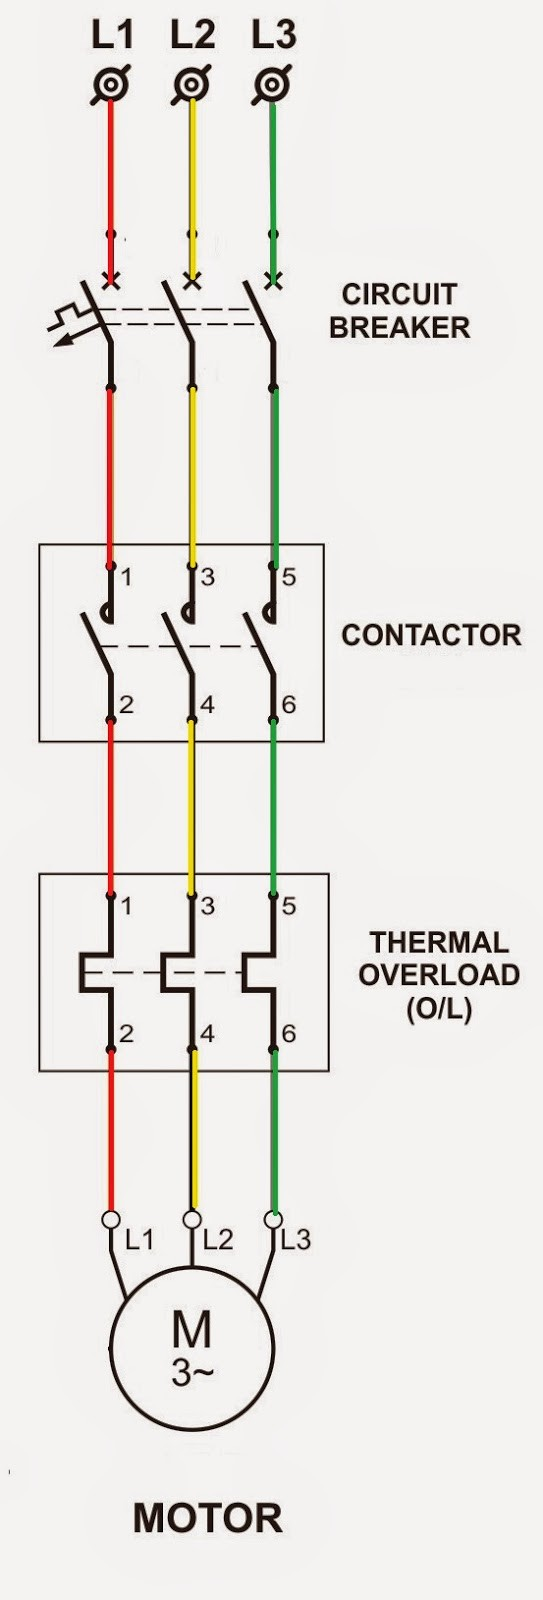 Cutler Hammer Advantage Starter Wiring Diagram Solutions Contactor For Westinghouse Trusted